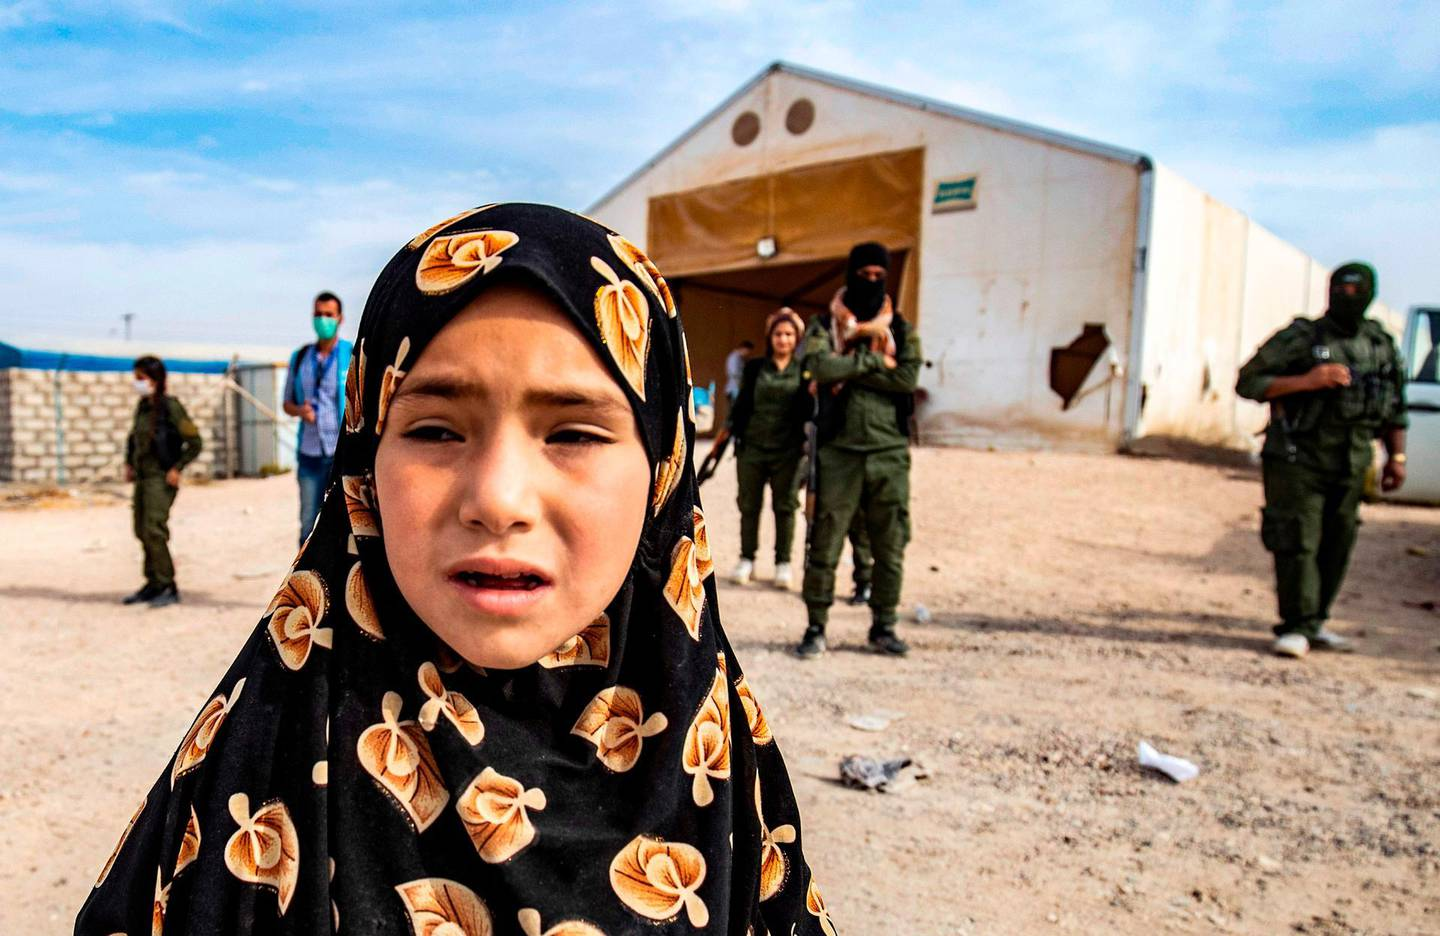 Kurdish fighter stand guard as Syrian child, suspected of being related to Islamic State (IS) group fighters, waits at the Kurdish-run al-Hol camp, before being released along with women and children to return to their homes, in the al-Hasakeh governorate in northeastern Syria, on October 28, 2020.   / AFP / Delil SOULEIMAN